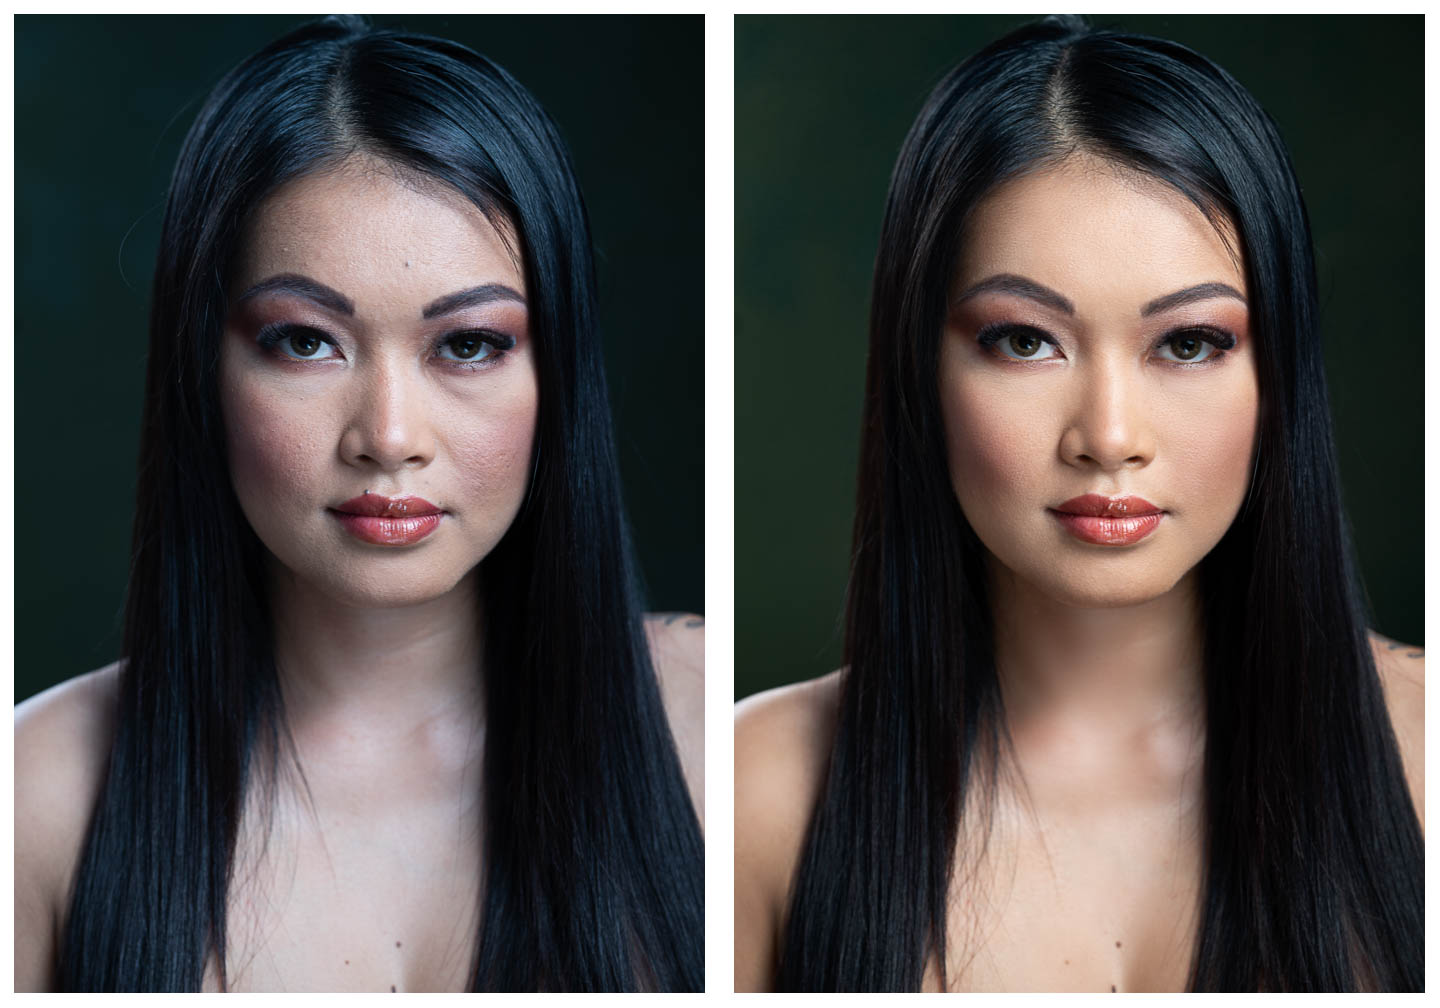 Beauty retouch with difficult lighting